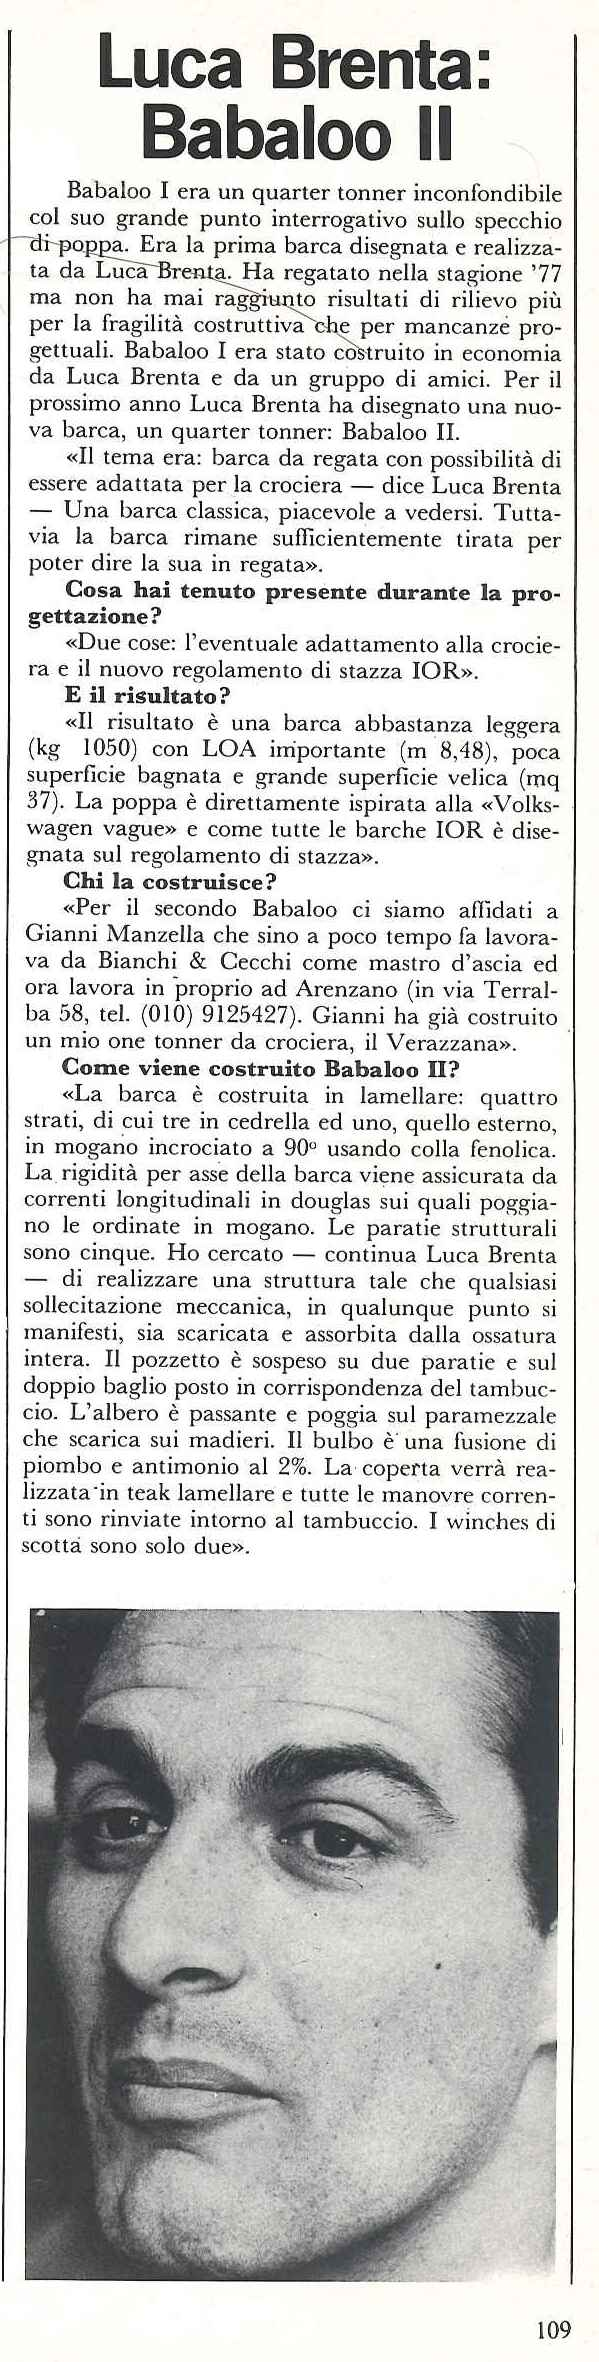 1979 01 PRESS LUCA BRENTA BABALOO II Uomomare30.jpg